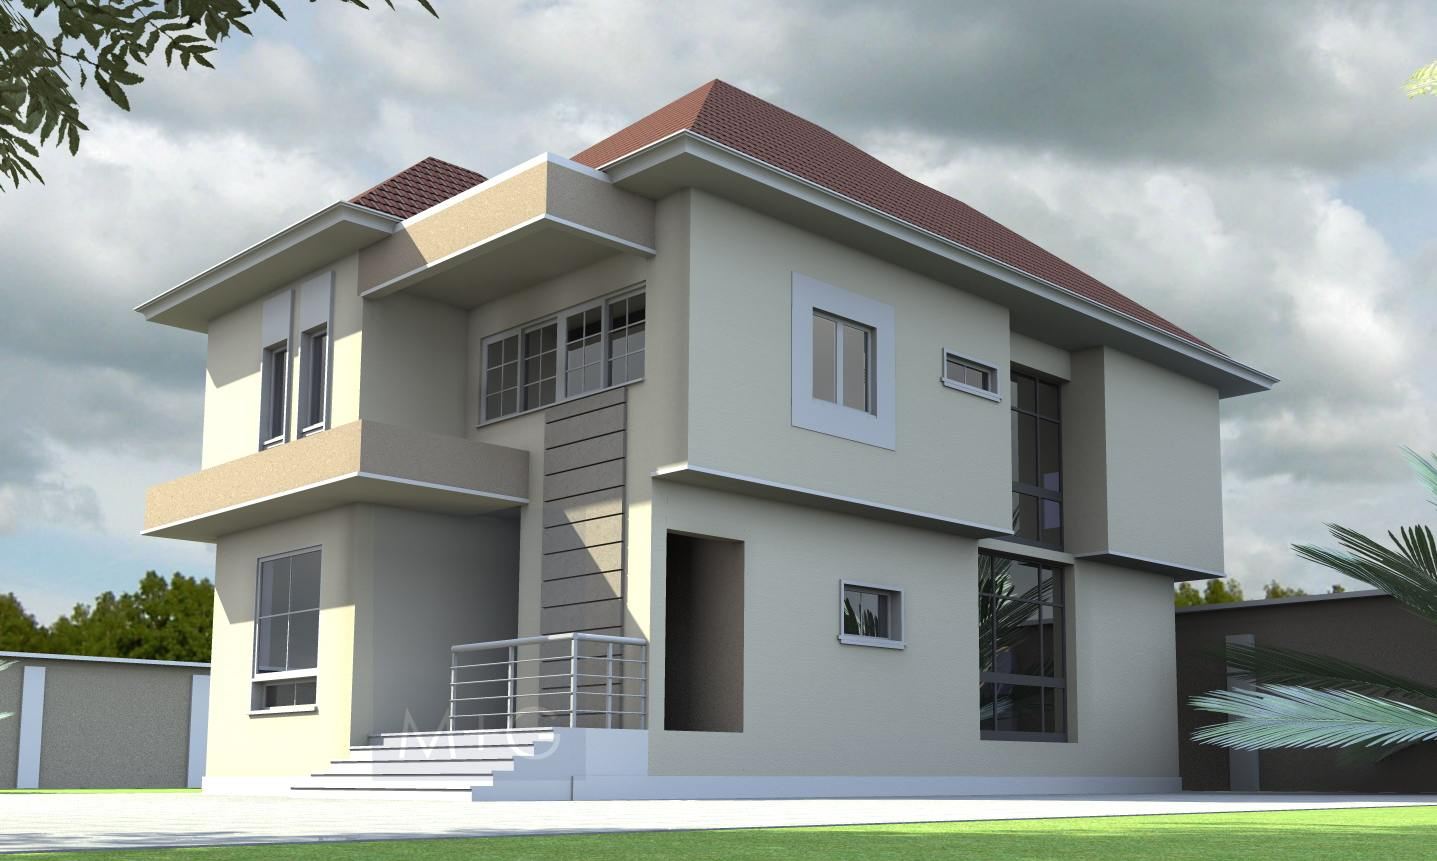 House plans and design architectural designs for for Contemporary residential architecture